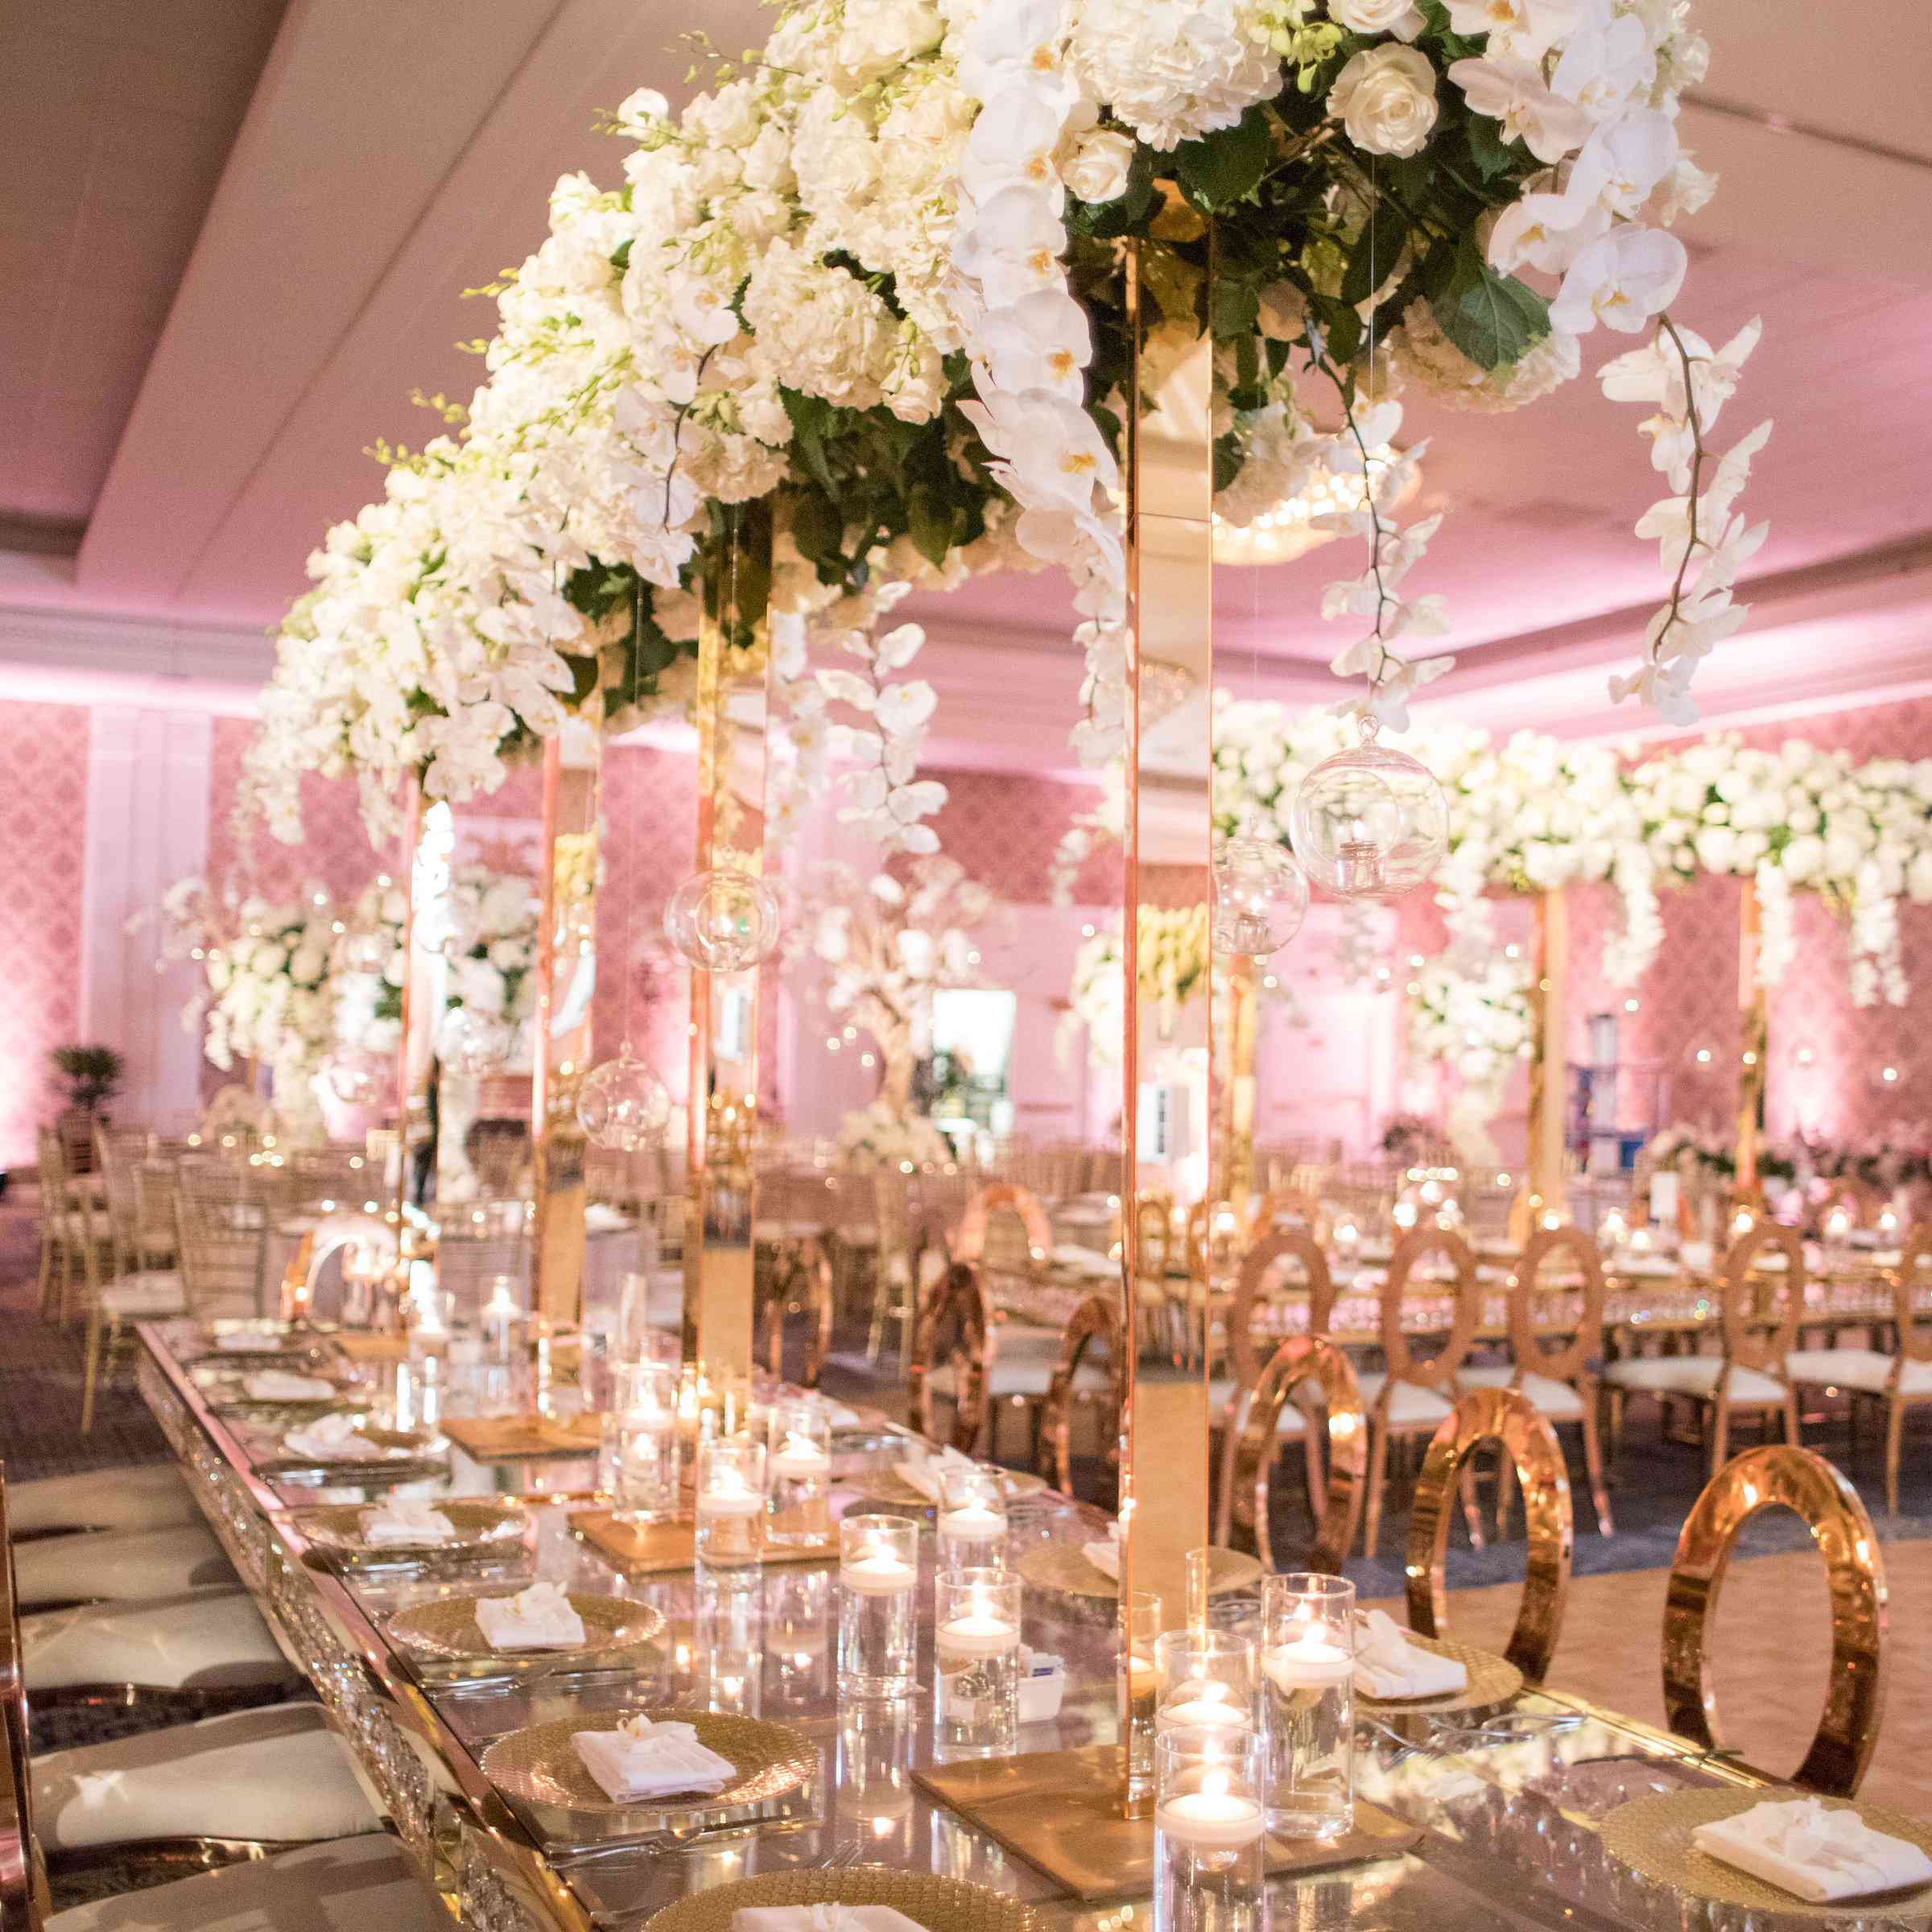 tall floral centerpieces mirrored tables